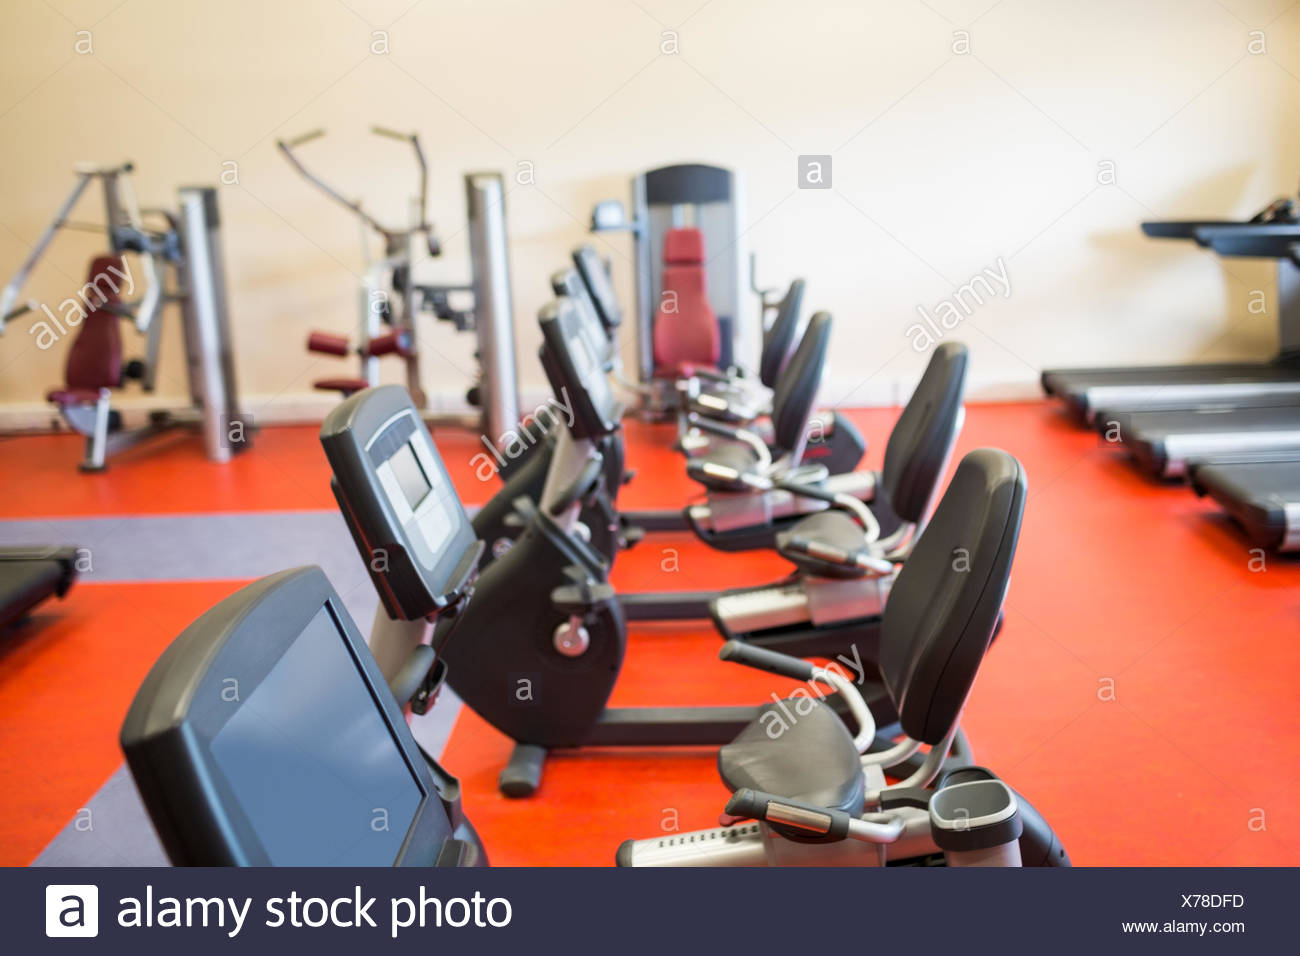 Selection of different exercise machines - Stock Image